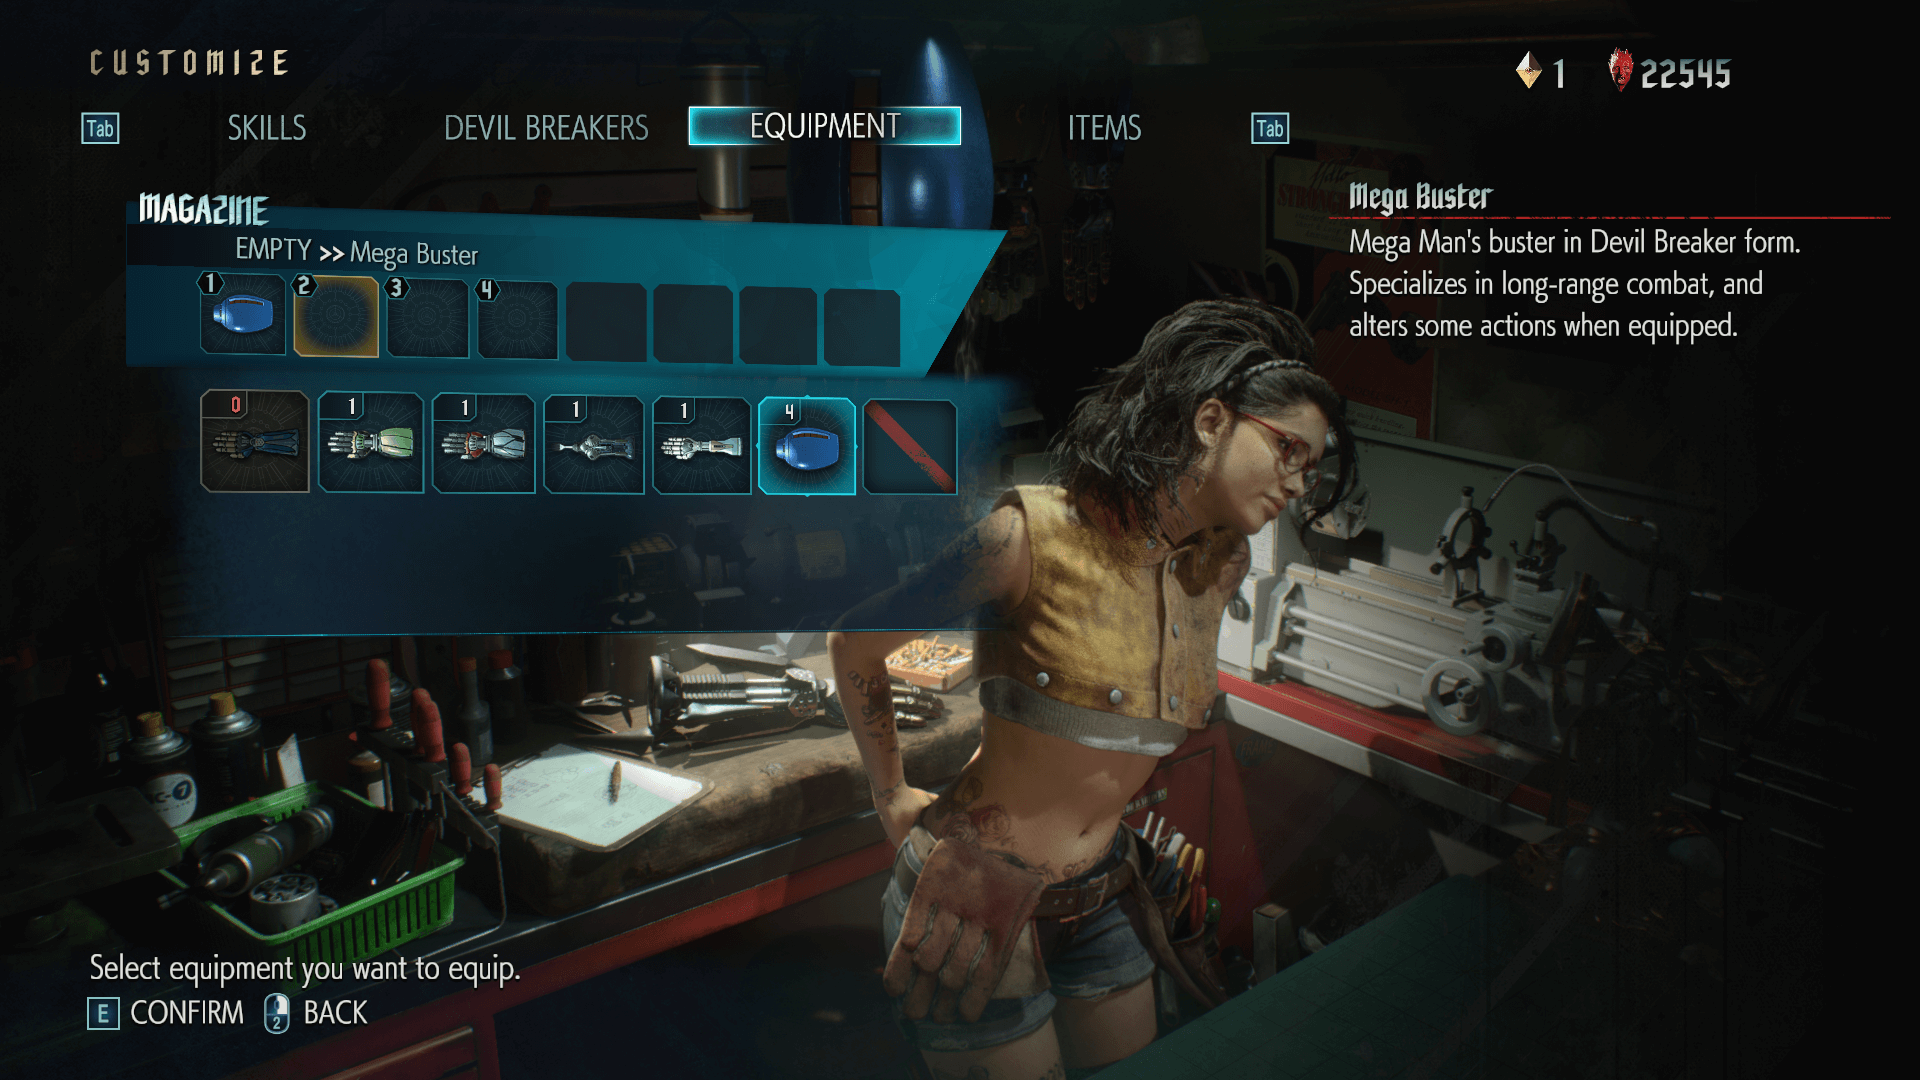 Equipment screenshot of Devil May Cry 5 video game interface.